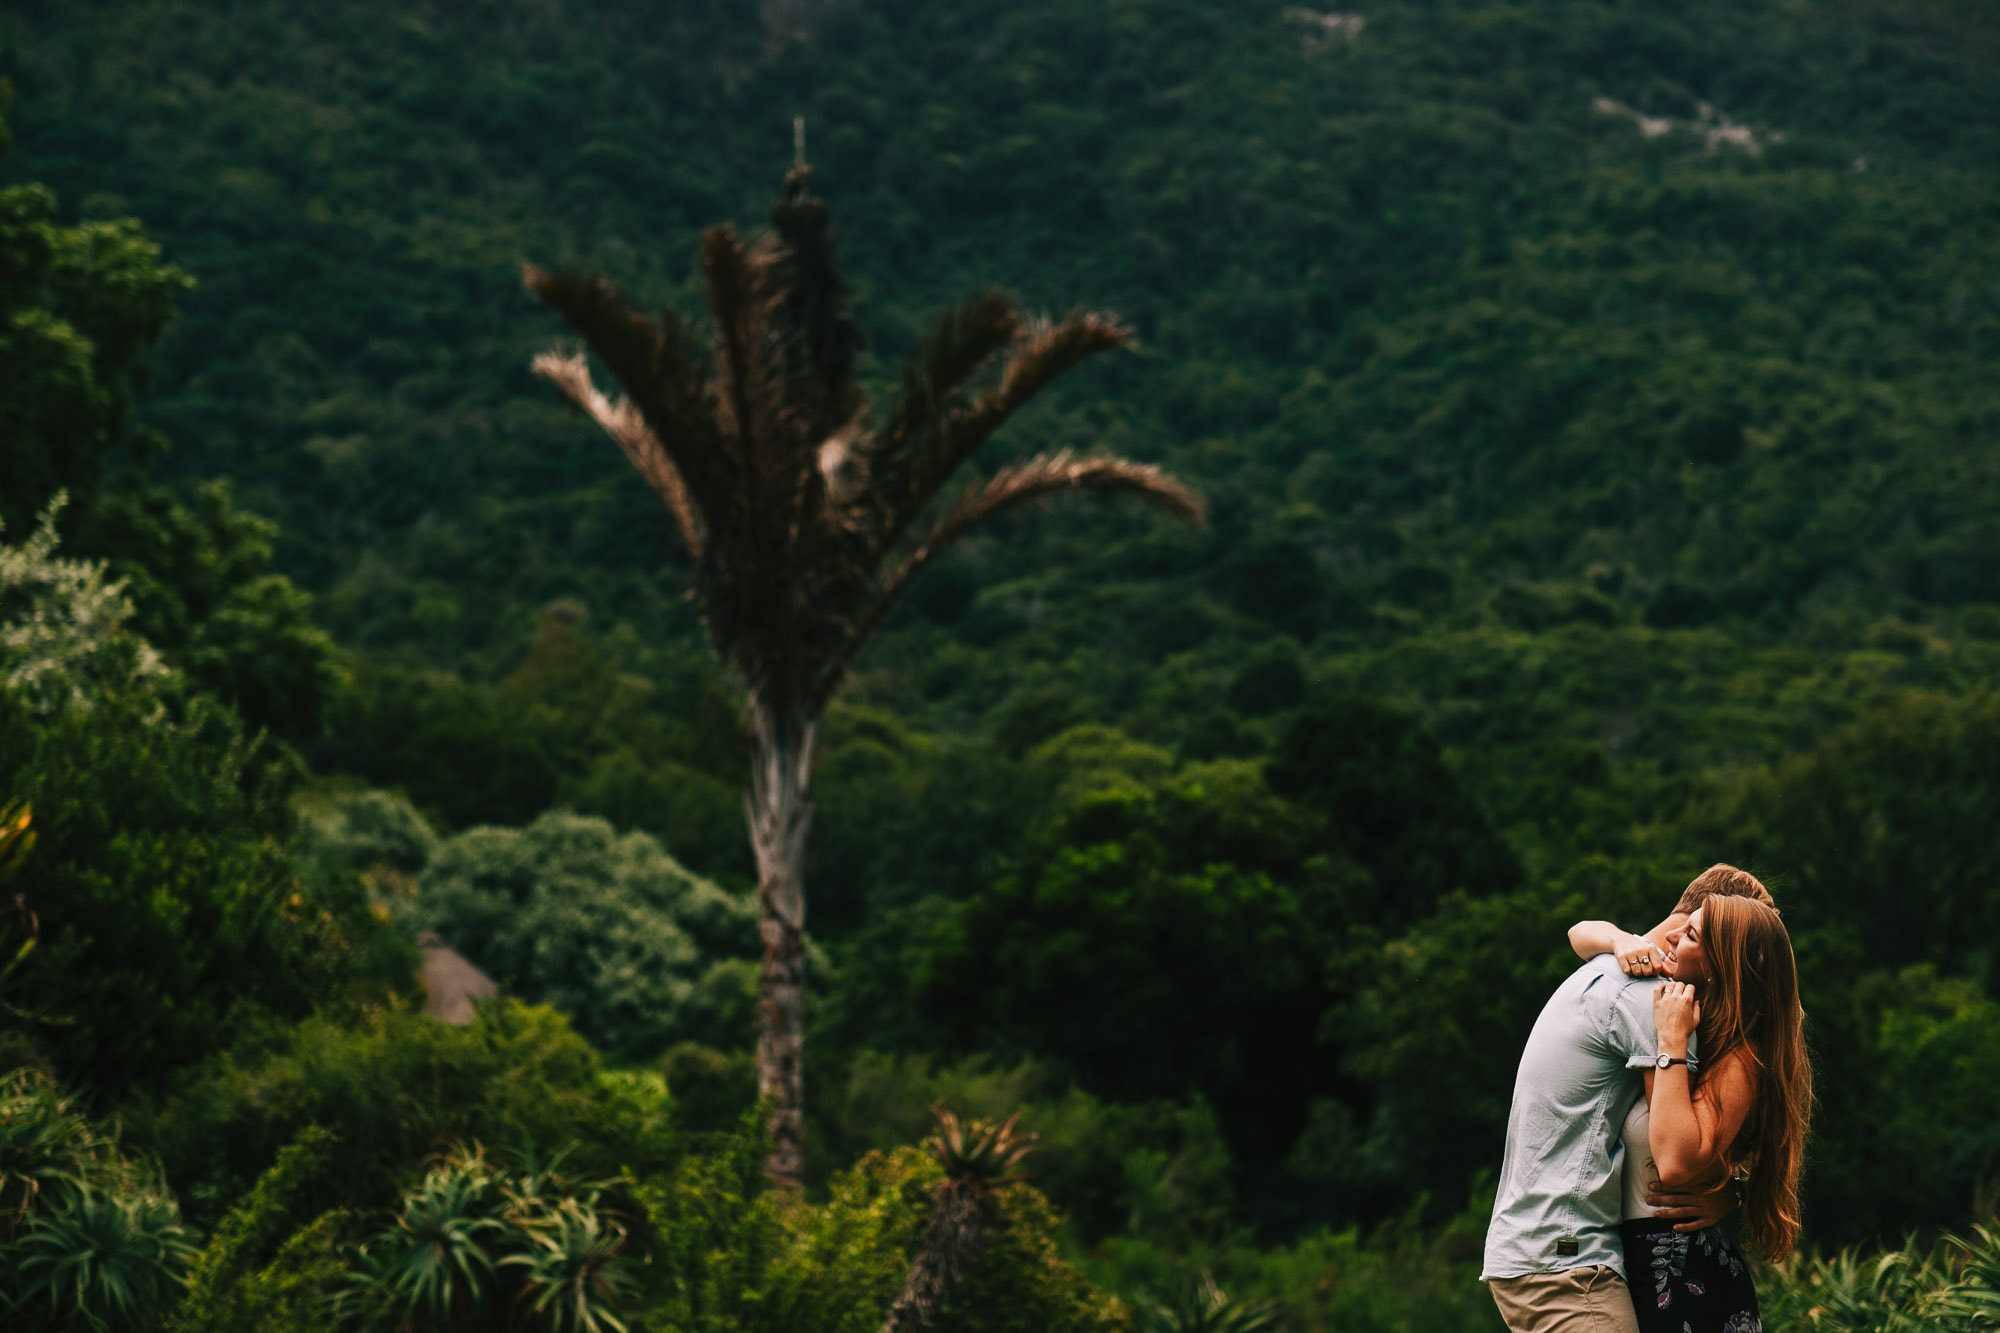 Cape Town Wedding Photographer - Victoria and Sheldon laughing in Kirstenbosch Gardens